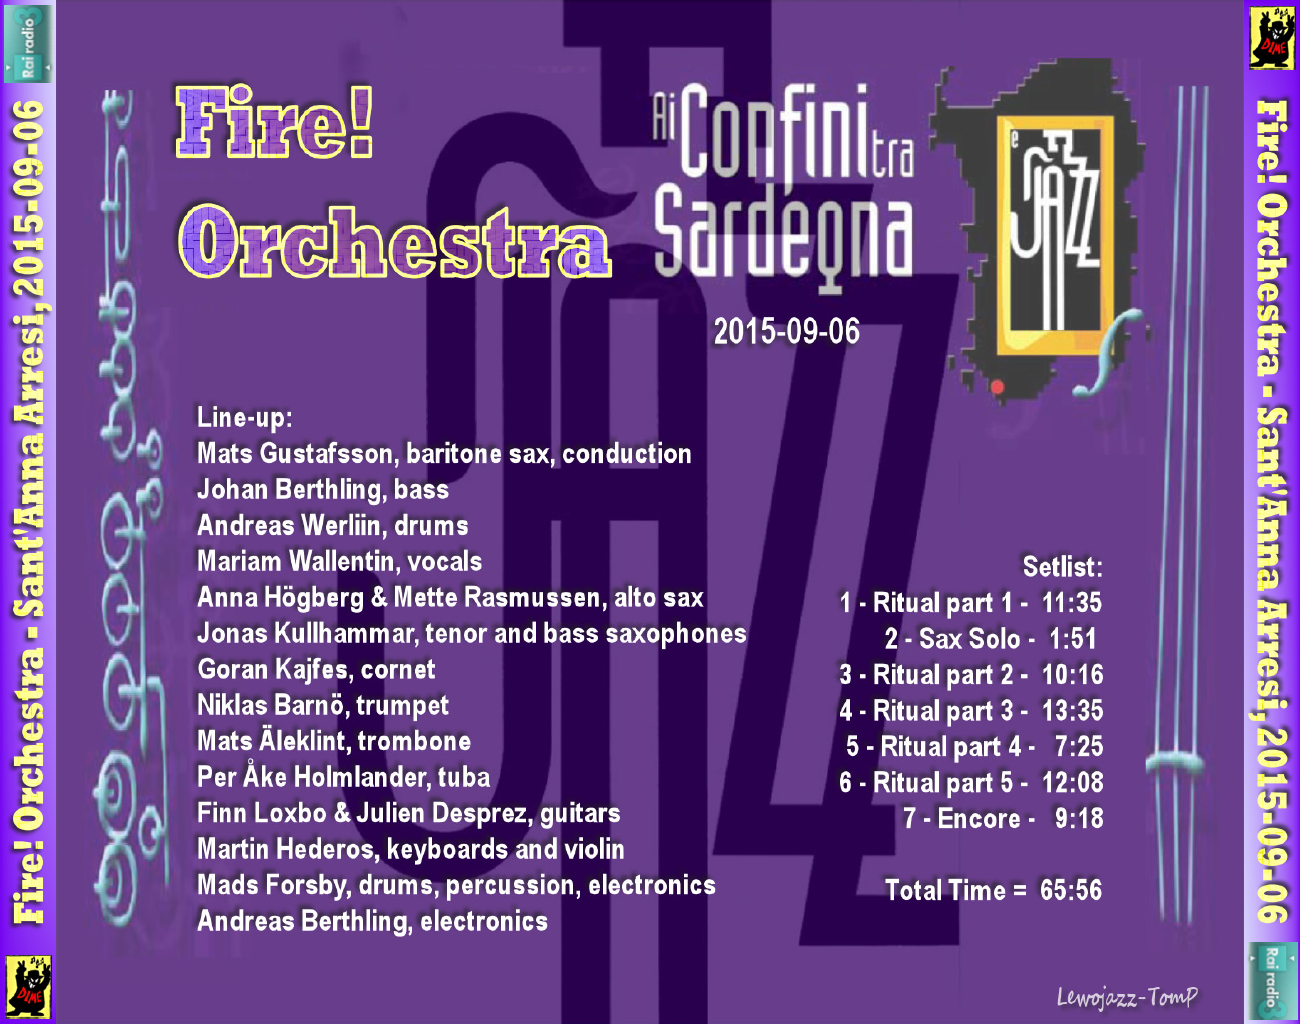 FireOrchestra2015-12-29PiazzaDelNuragheItaly (4).png